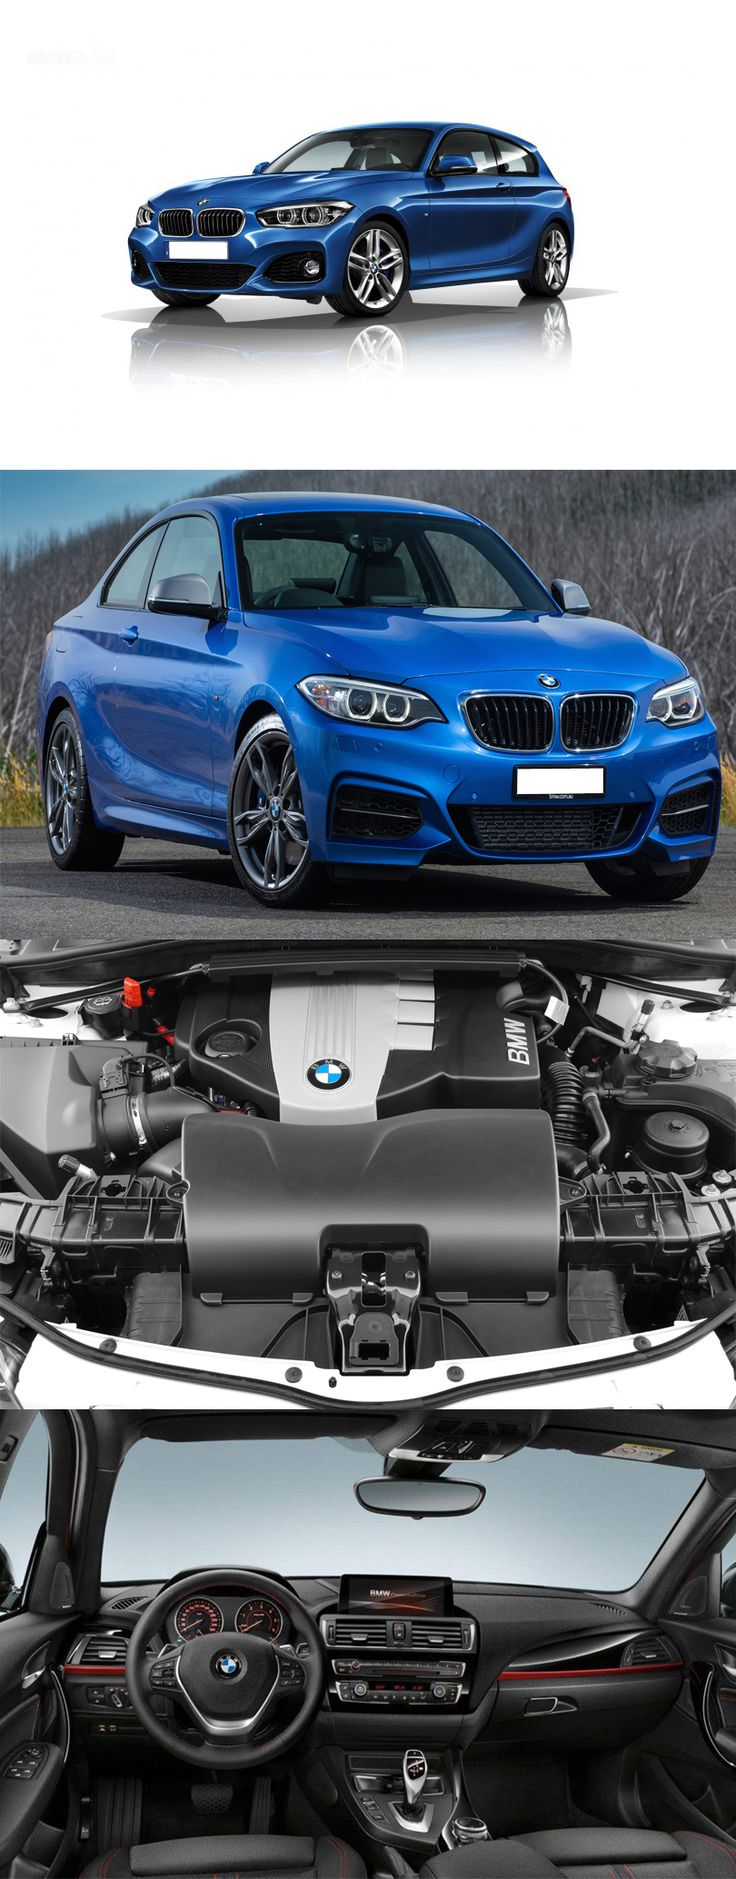 BMW 118d xDrive Engine is the King of the Market #BMW118d #xDriveEngine https://www.germancartech.co.uk/blog/bmw-118d-xdrive-engine-king-market/